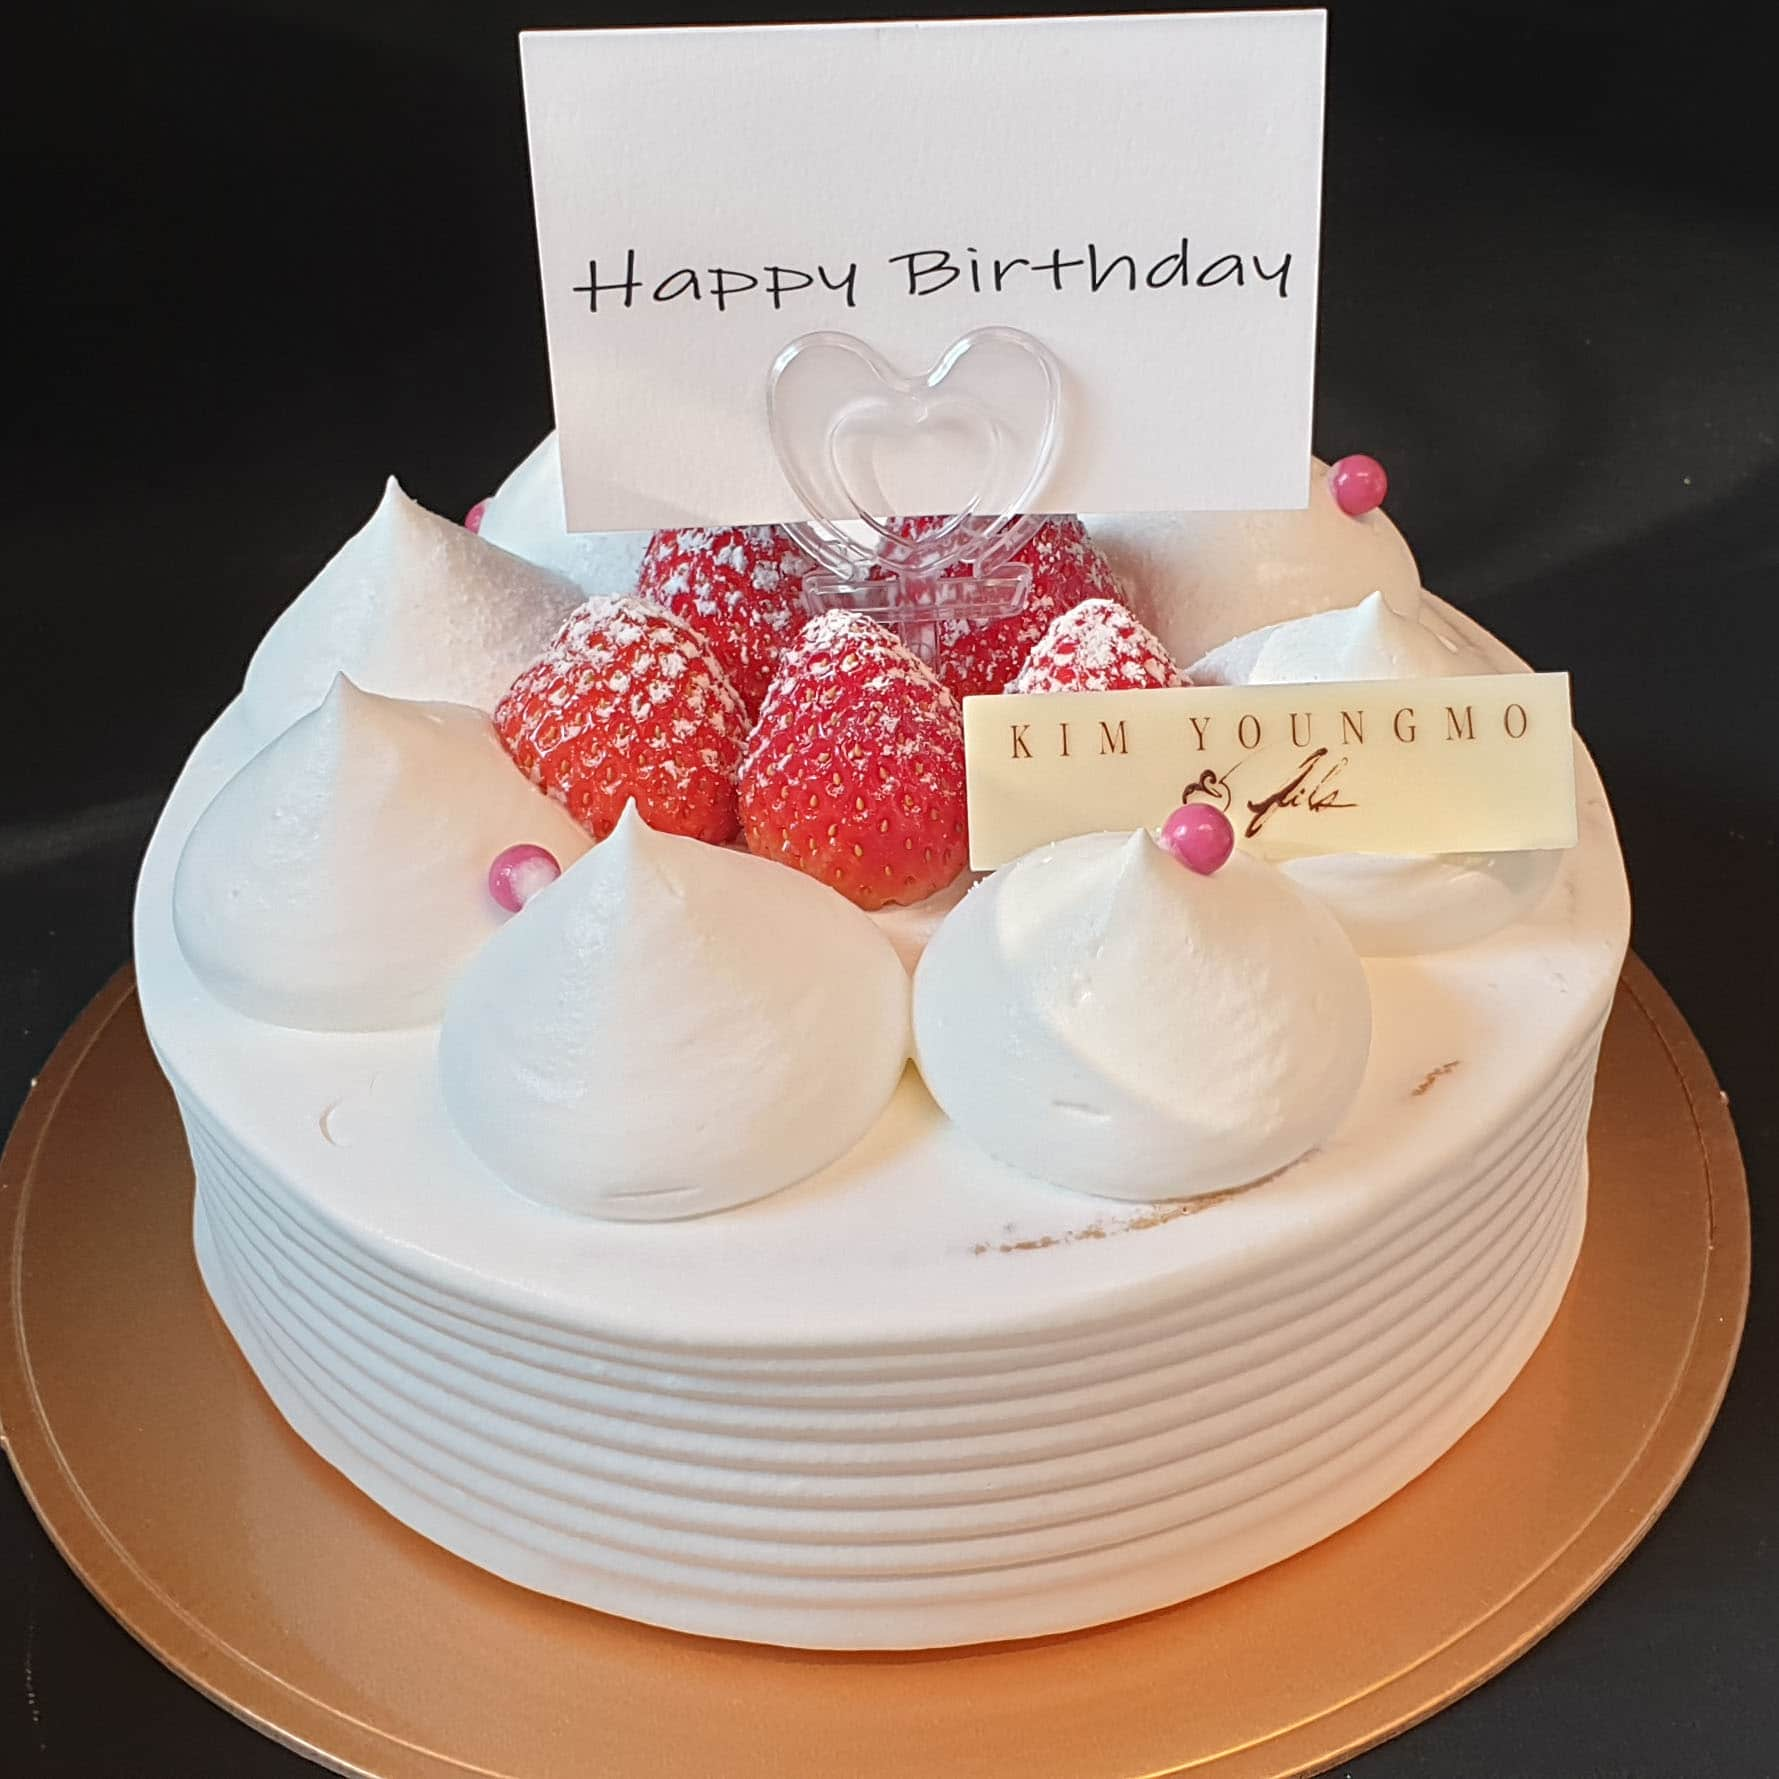 Peachy Categories Cakes Flower Chocolate Snacks And T Delivery In Funny Birthday Cards Online Elaedamsfinfo